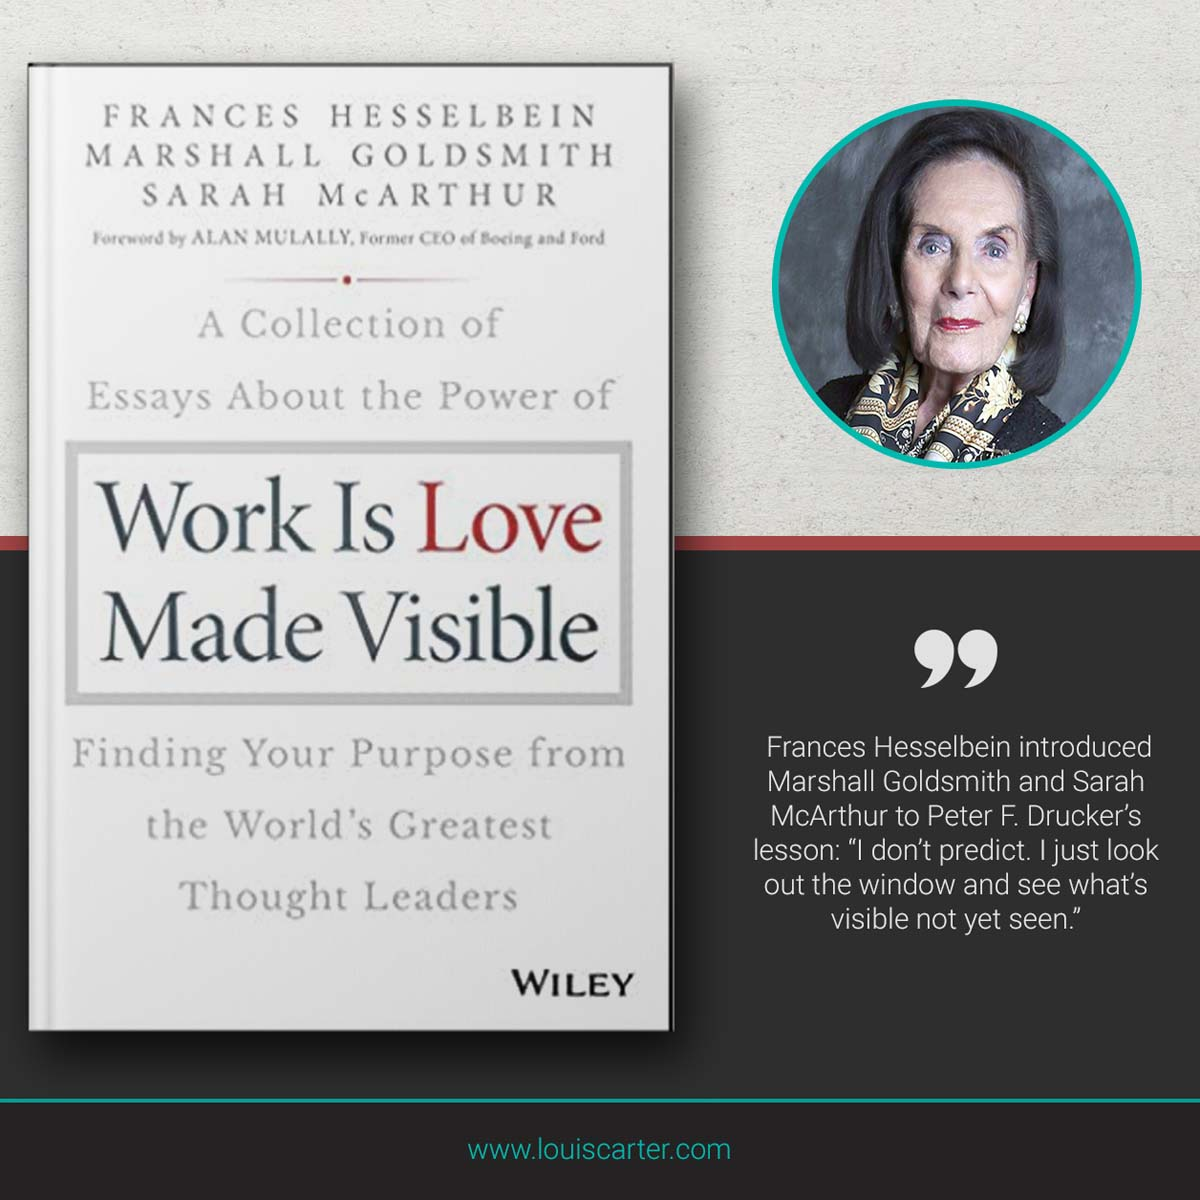 Image of Work is Love Made Visible Book on Leadership by Frances Hesselbein, Marshall Goldsmith, and Sarah McArthur.